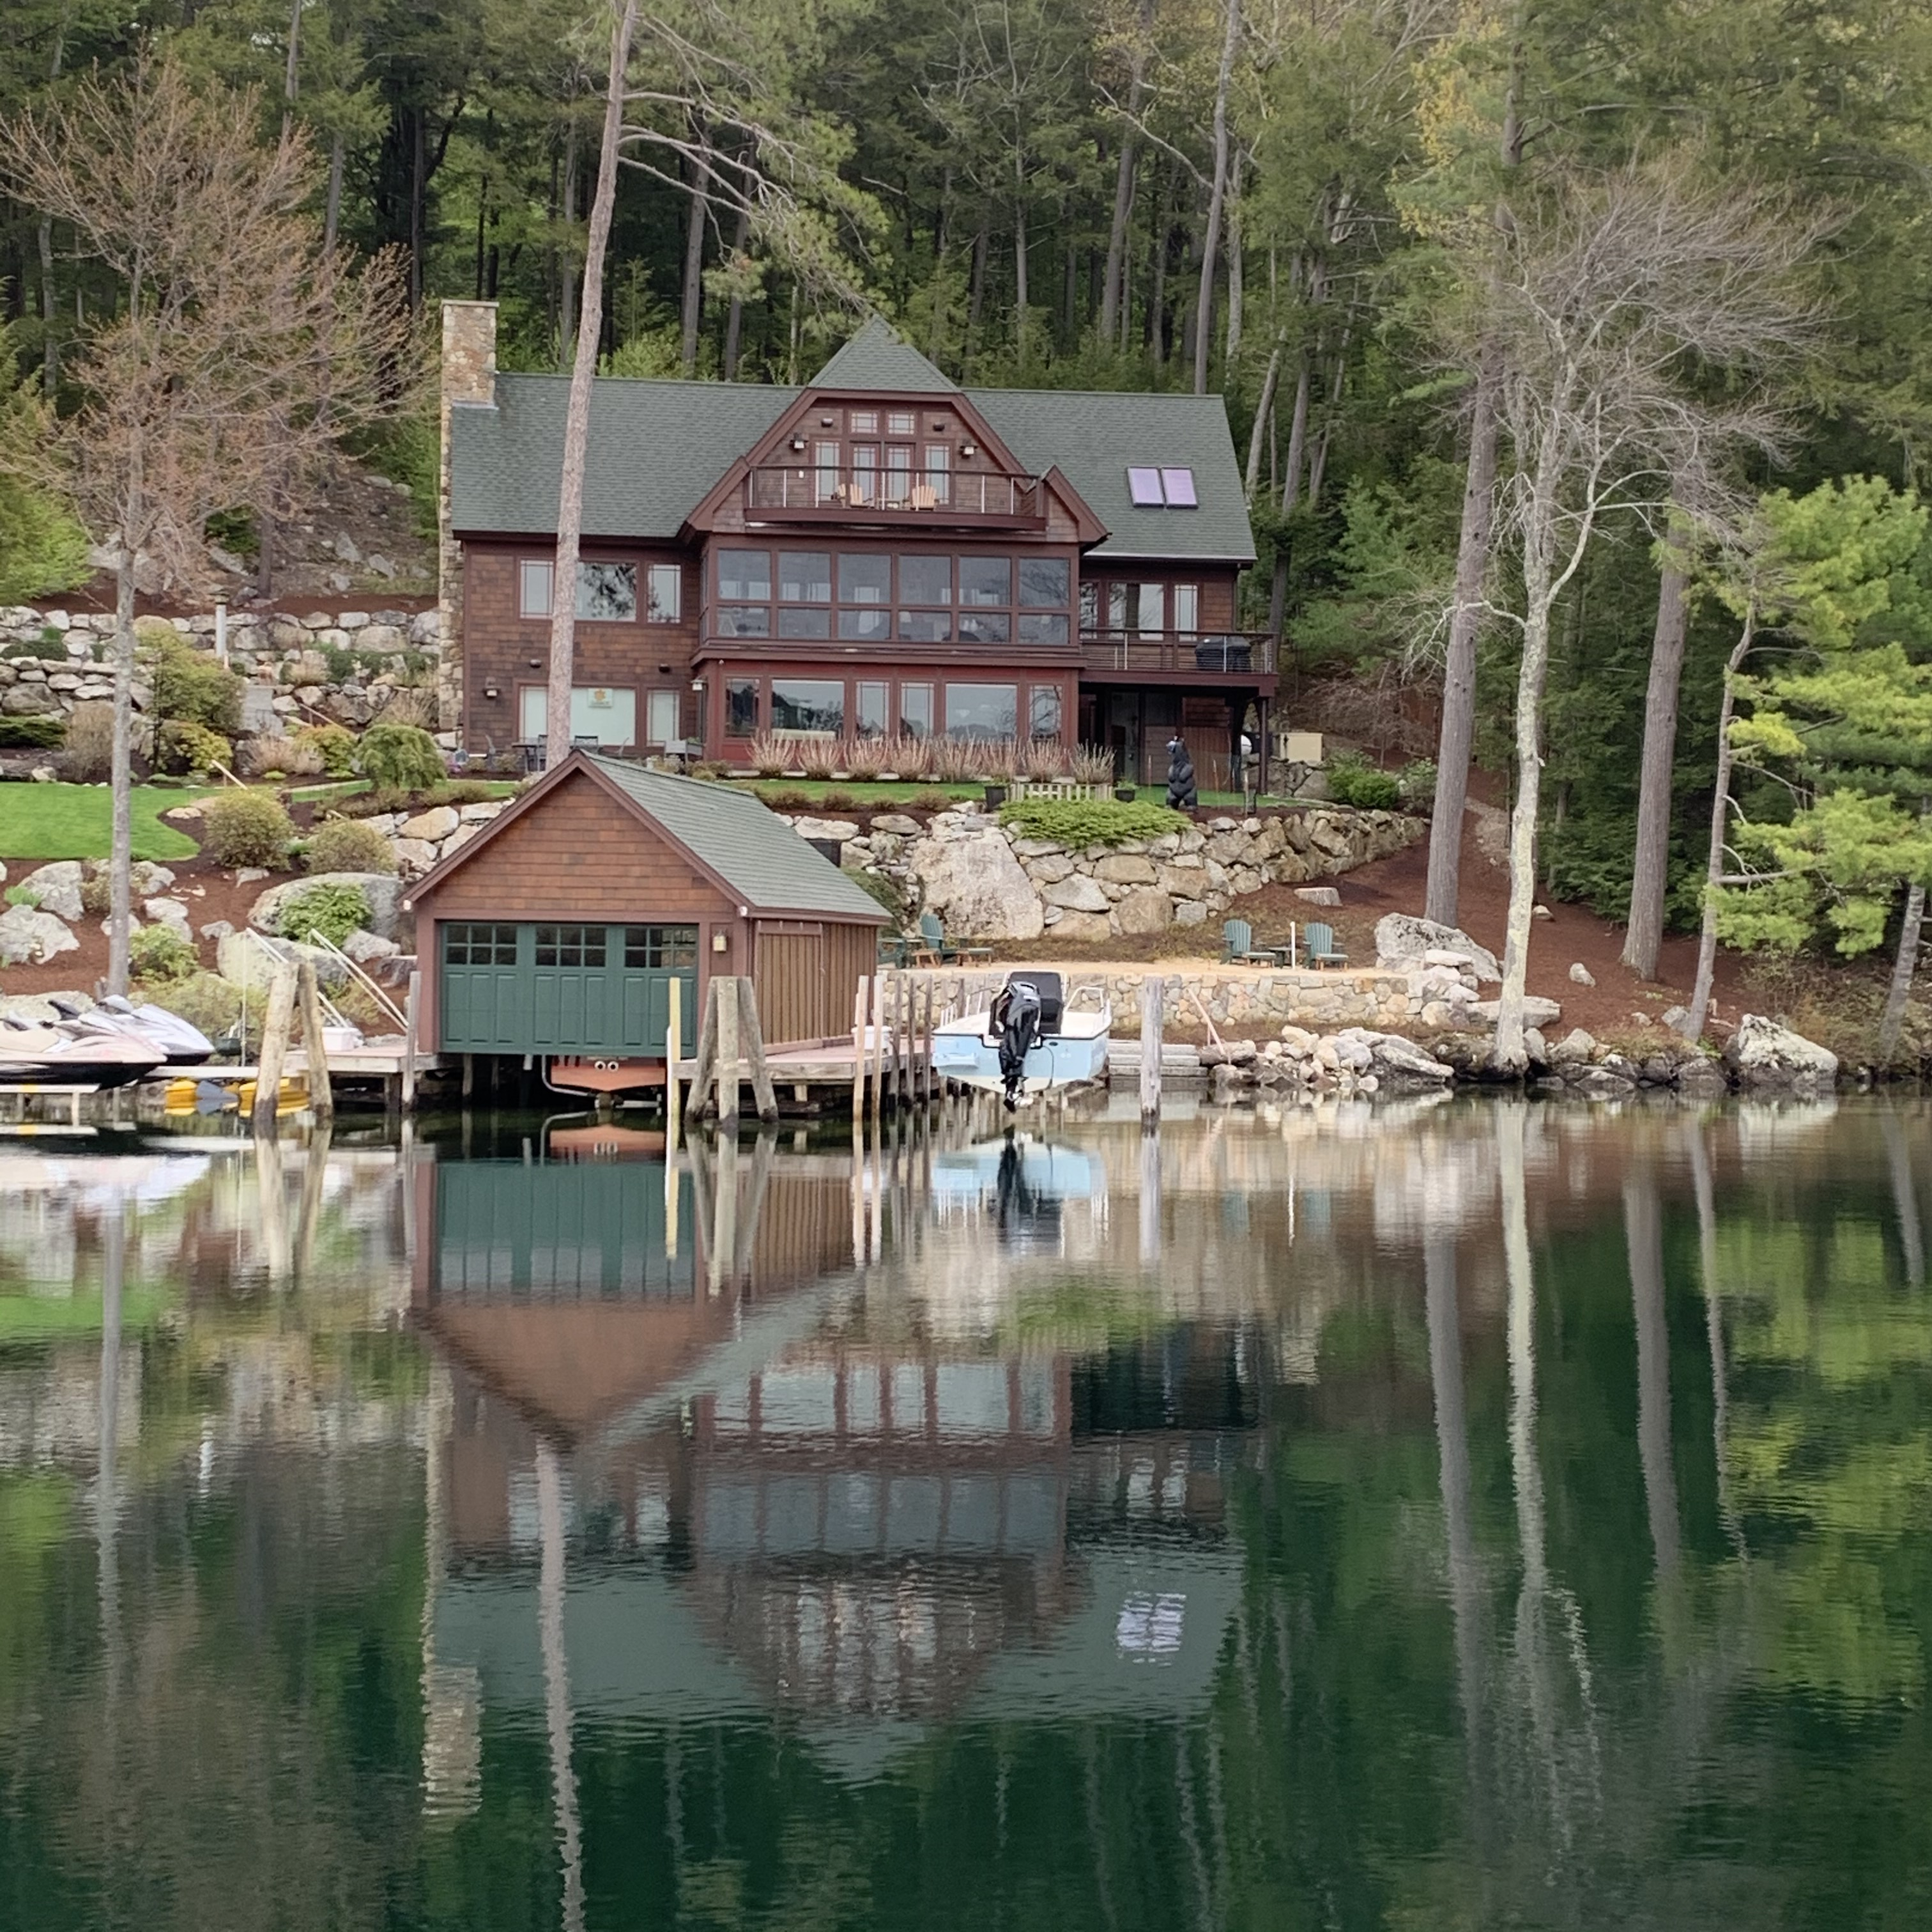 Waterfront home on Lake Winnipesaukee - Winnipesaukee home sales